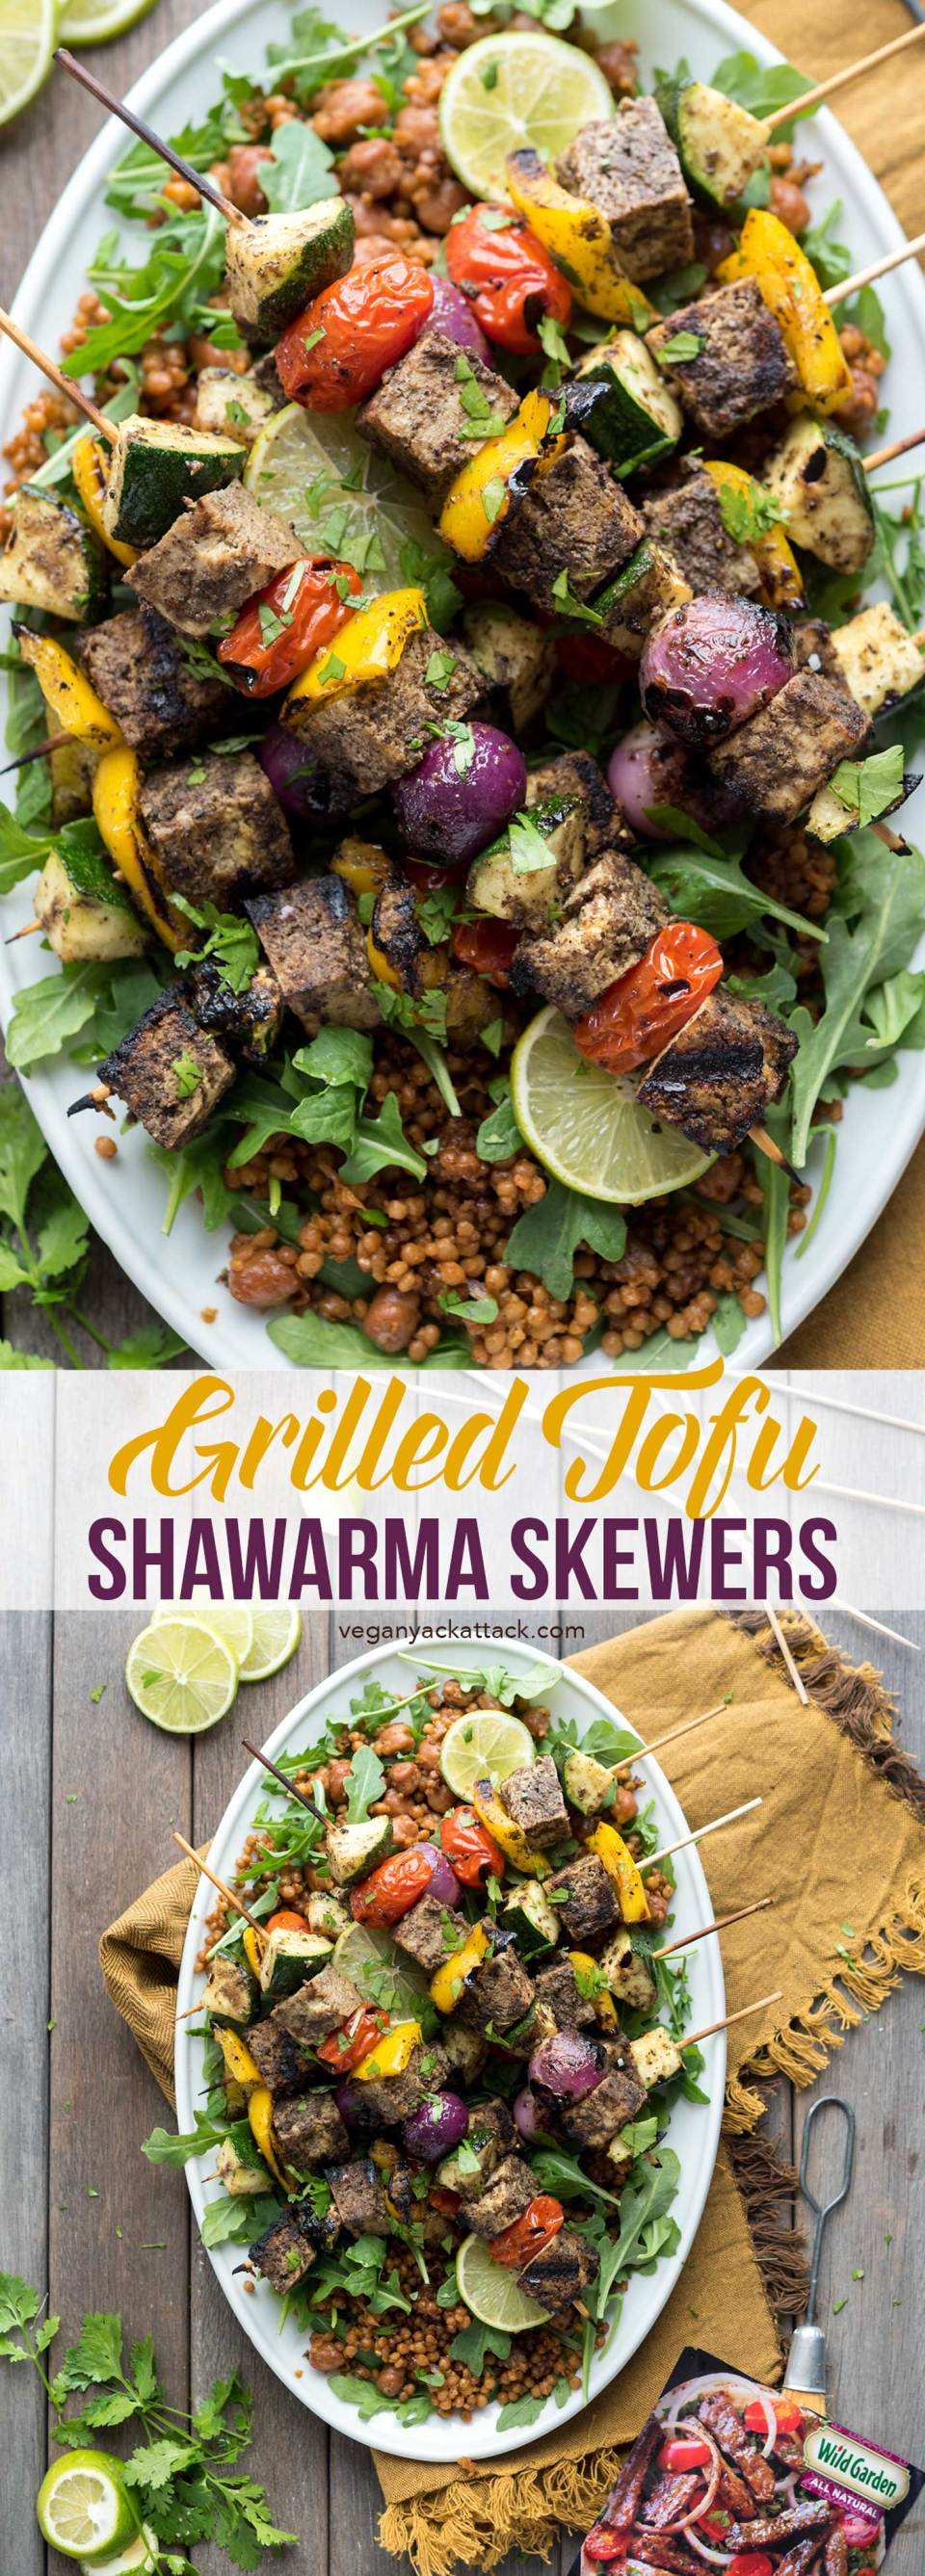 Grilled Tofu Shawarma Skewers! Perfect for Summer grilling, and made easily with Wild Garden's marinade. #vegan #veganyackattack #wildgardeneats